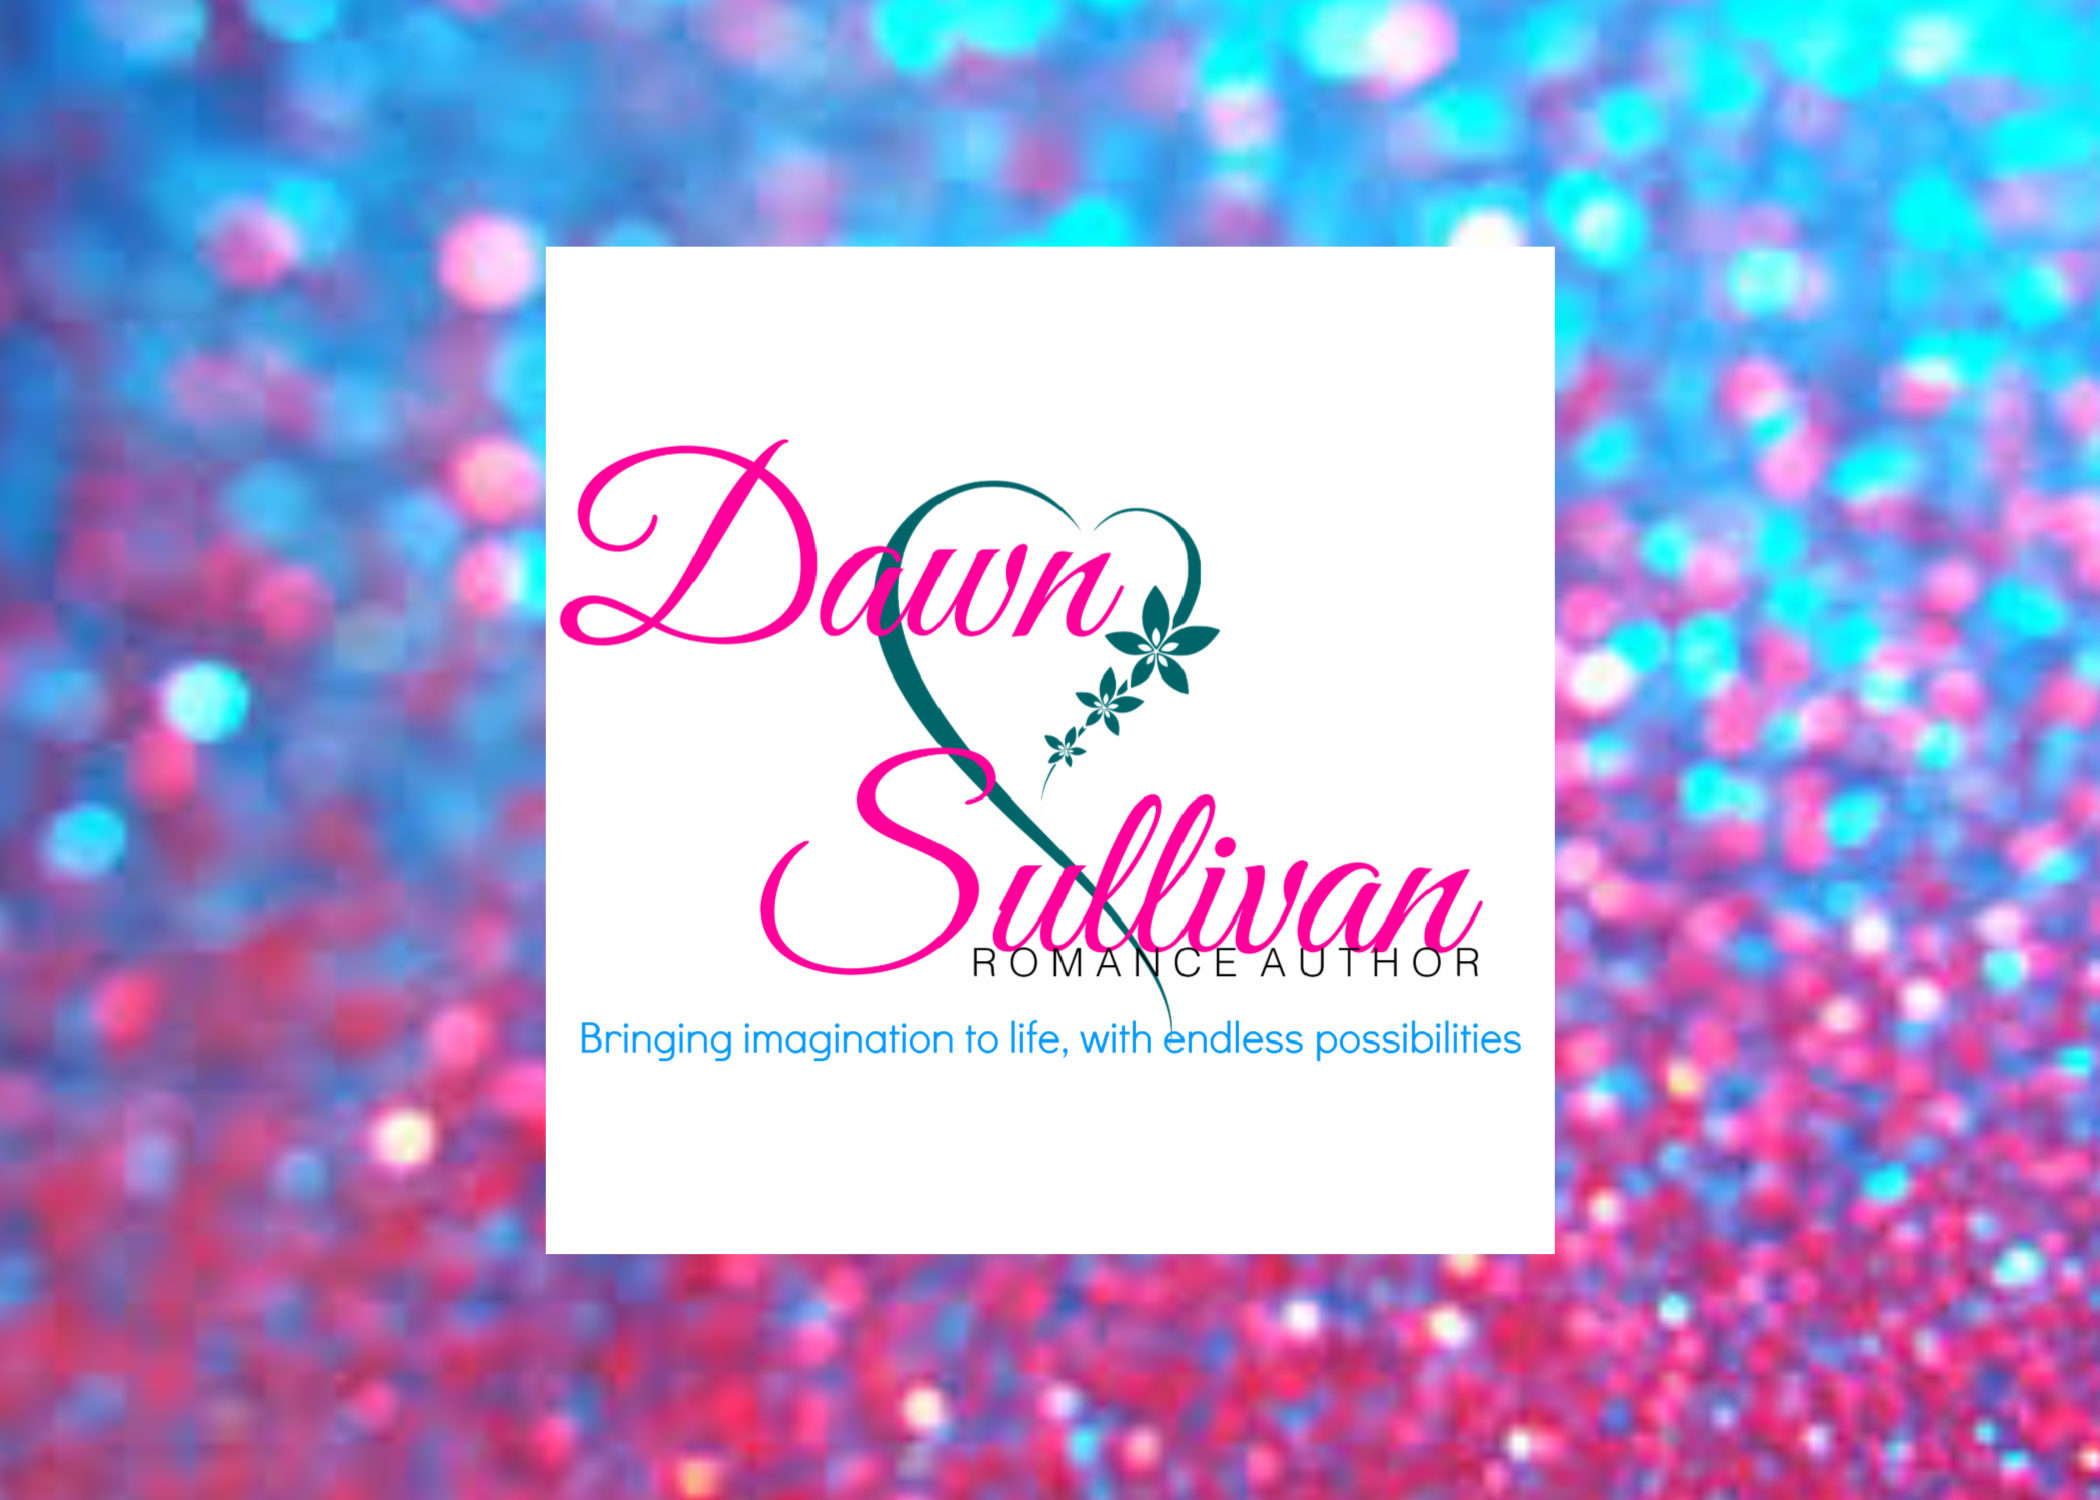 Dawn Sullivan Author